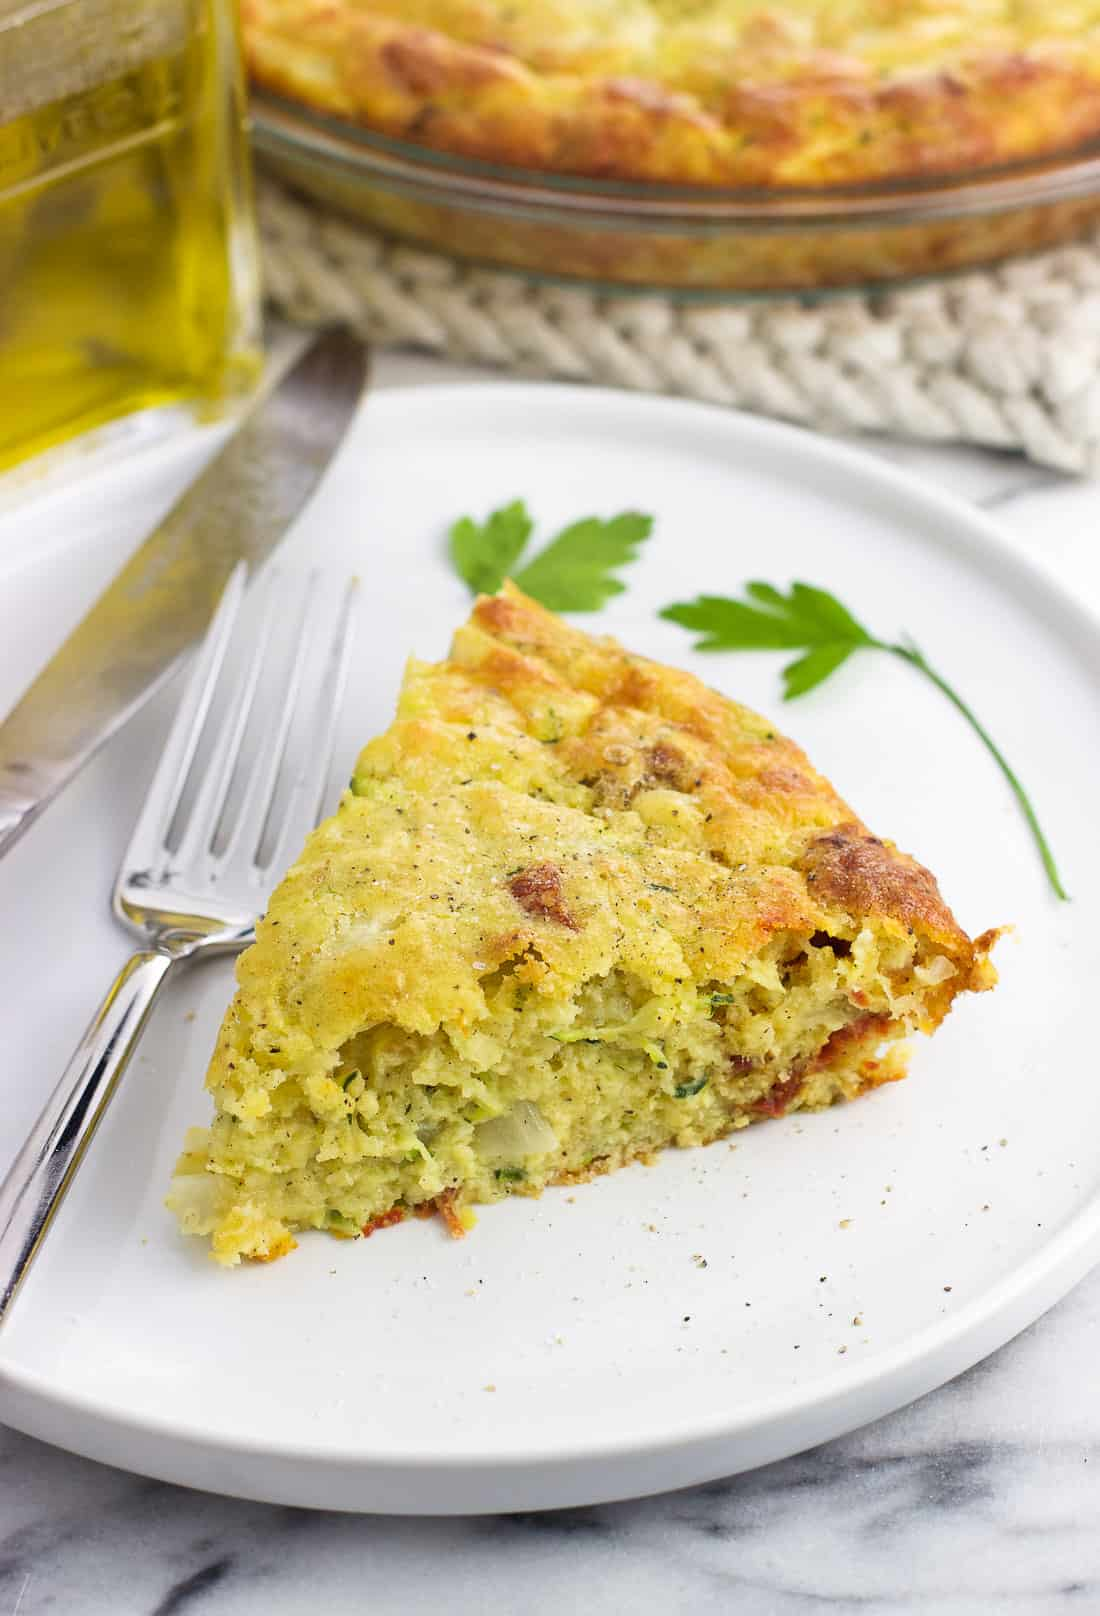 A slice of quiche on a plate with a fork and knife in front of the pan of quiche and a glass bottle of olive oil